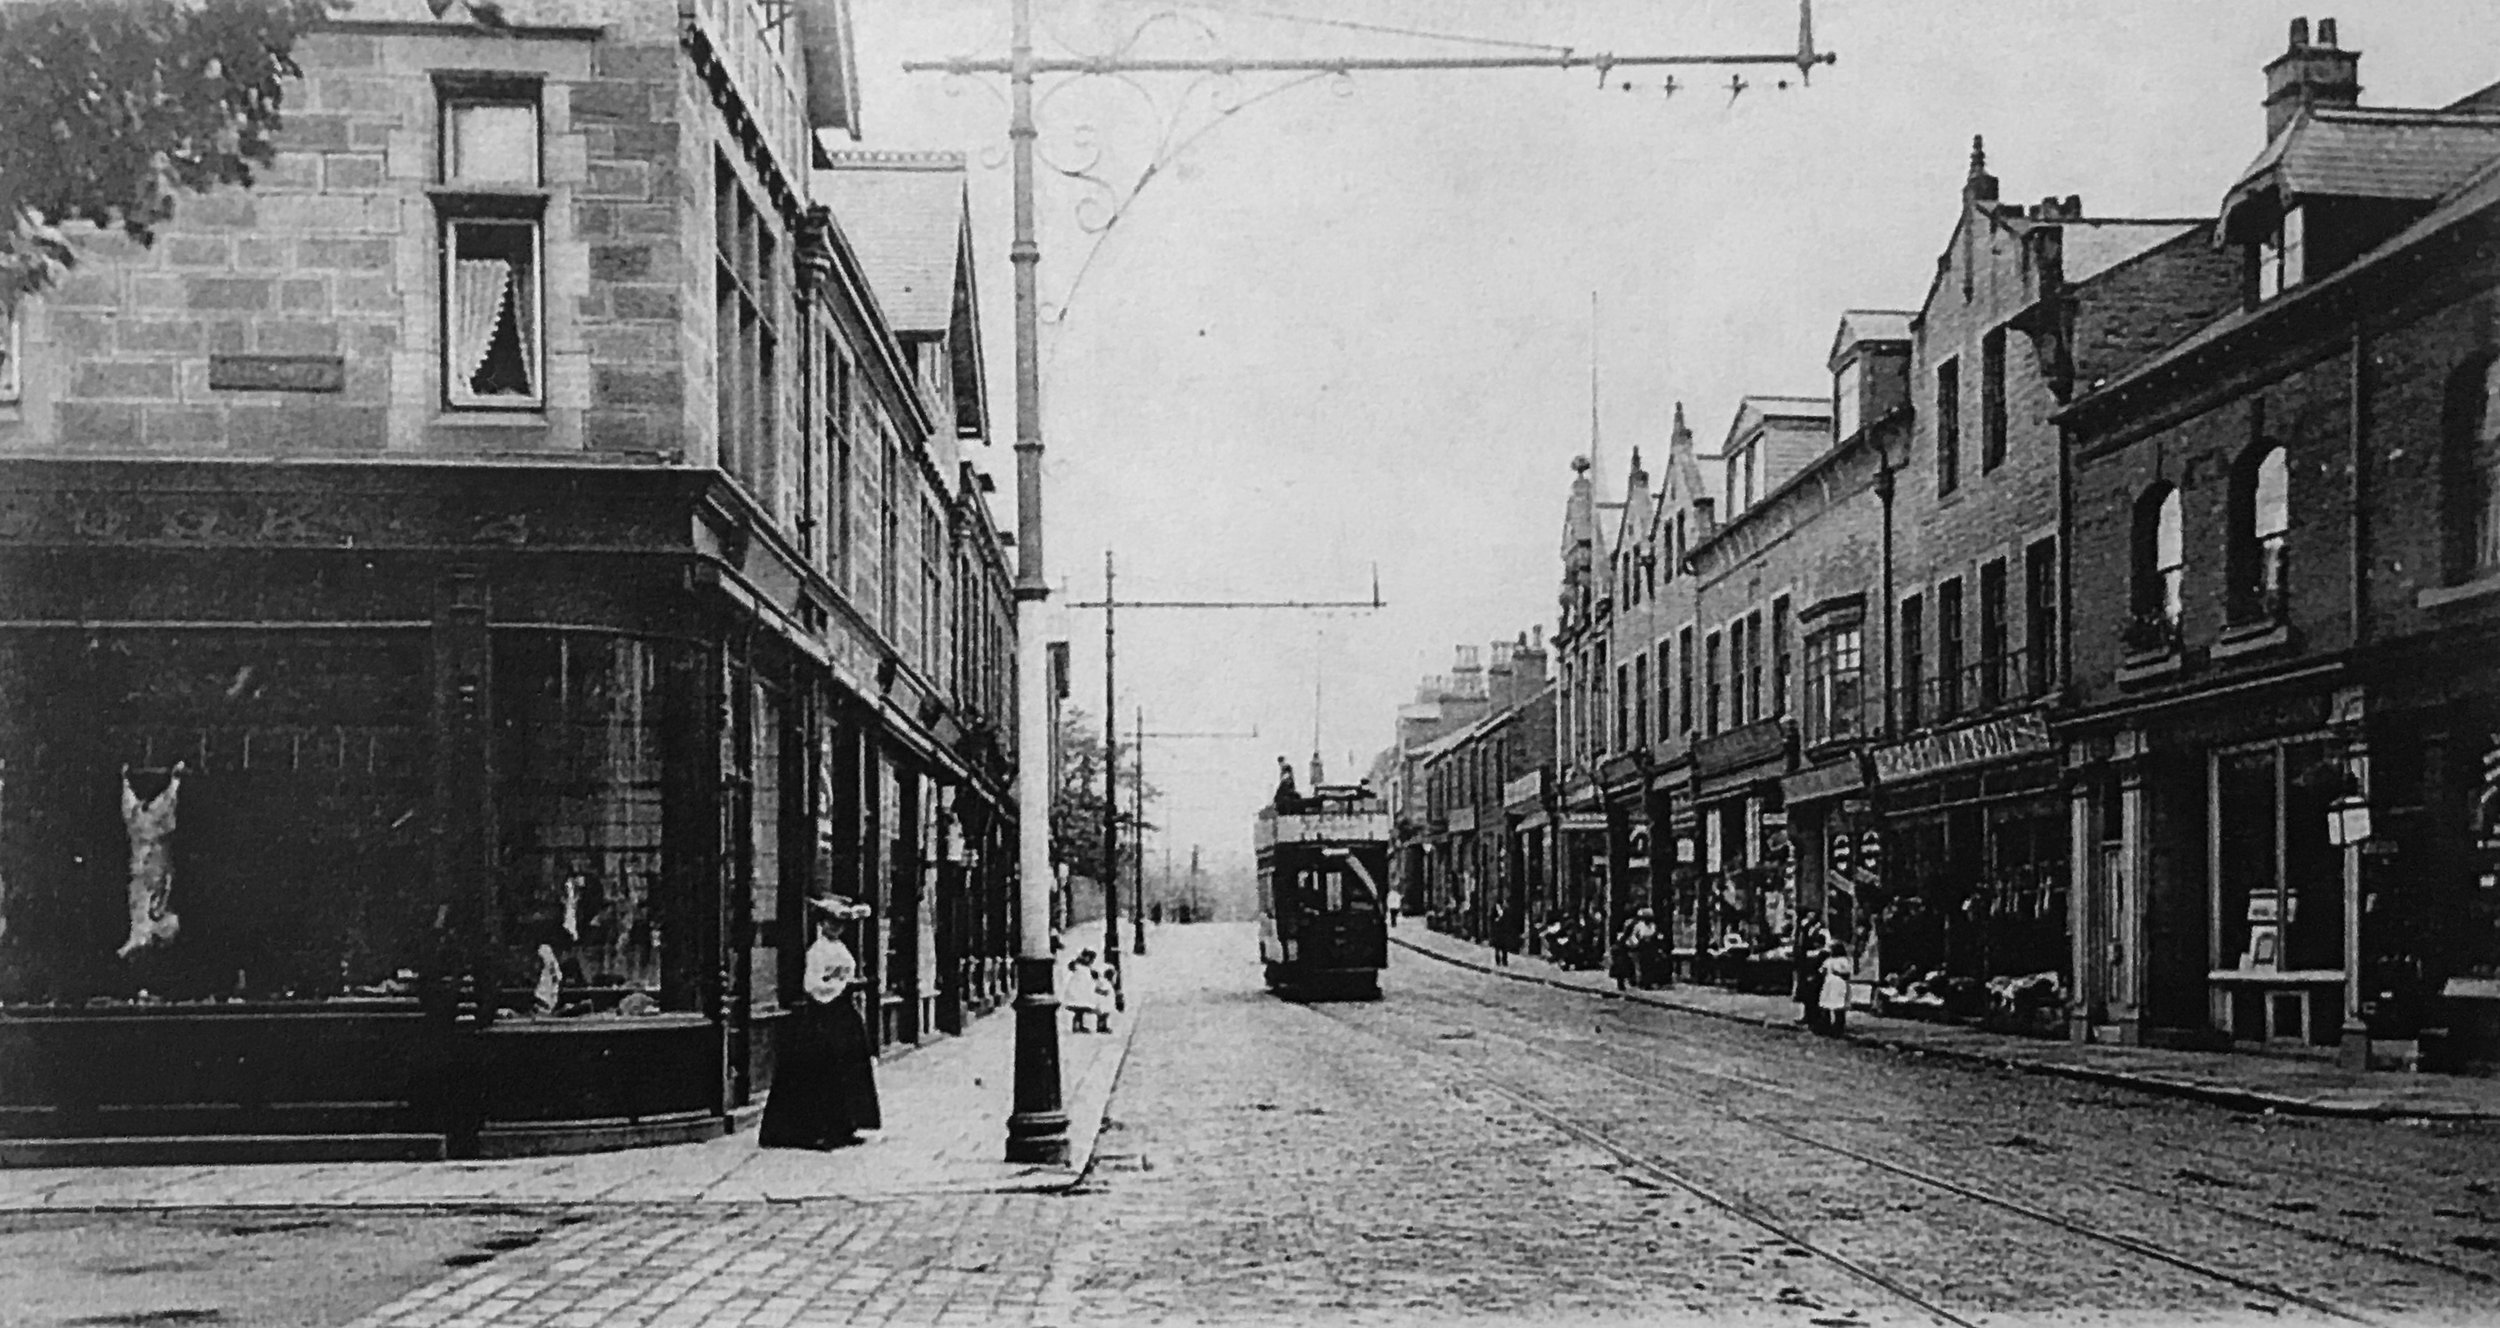 Otley Road and Wood Lane Junction, circa 1905